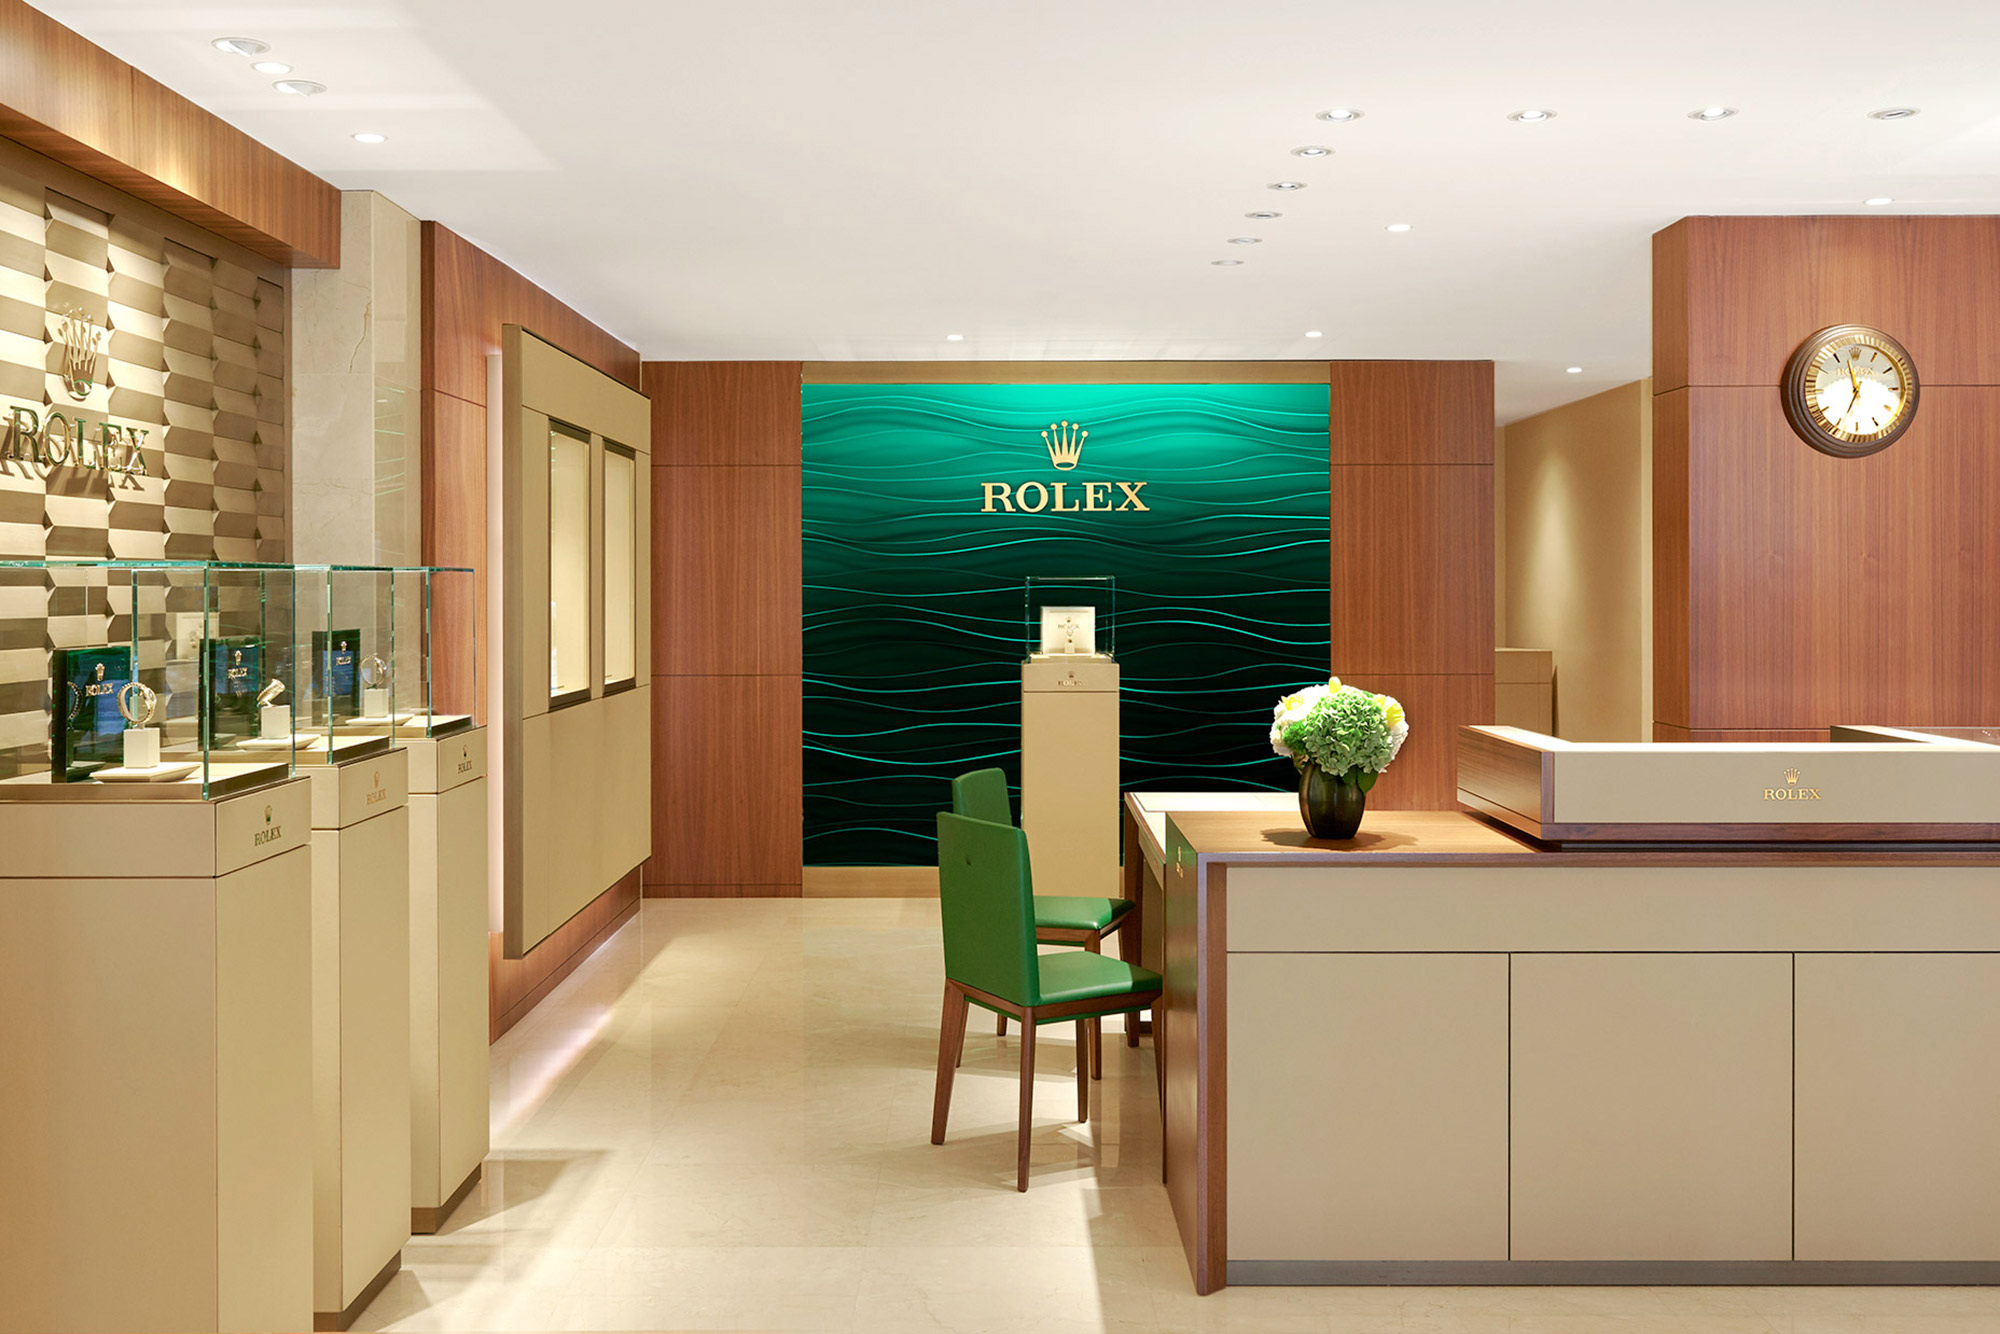 Siam Swiss Rolex Boutique at Central Bangna Shopping Mall